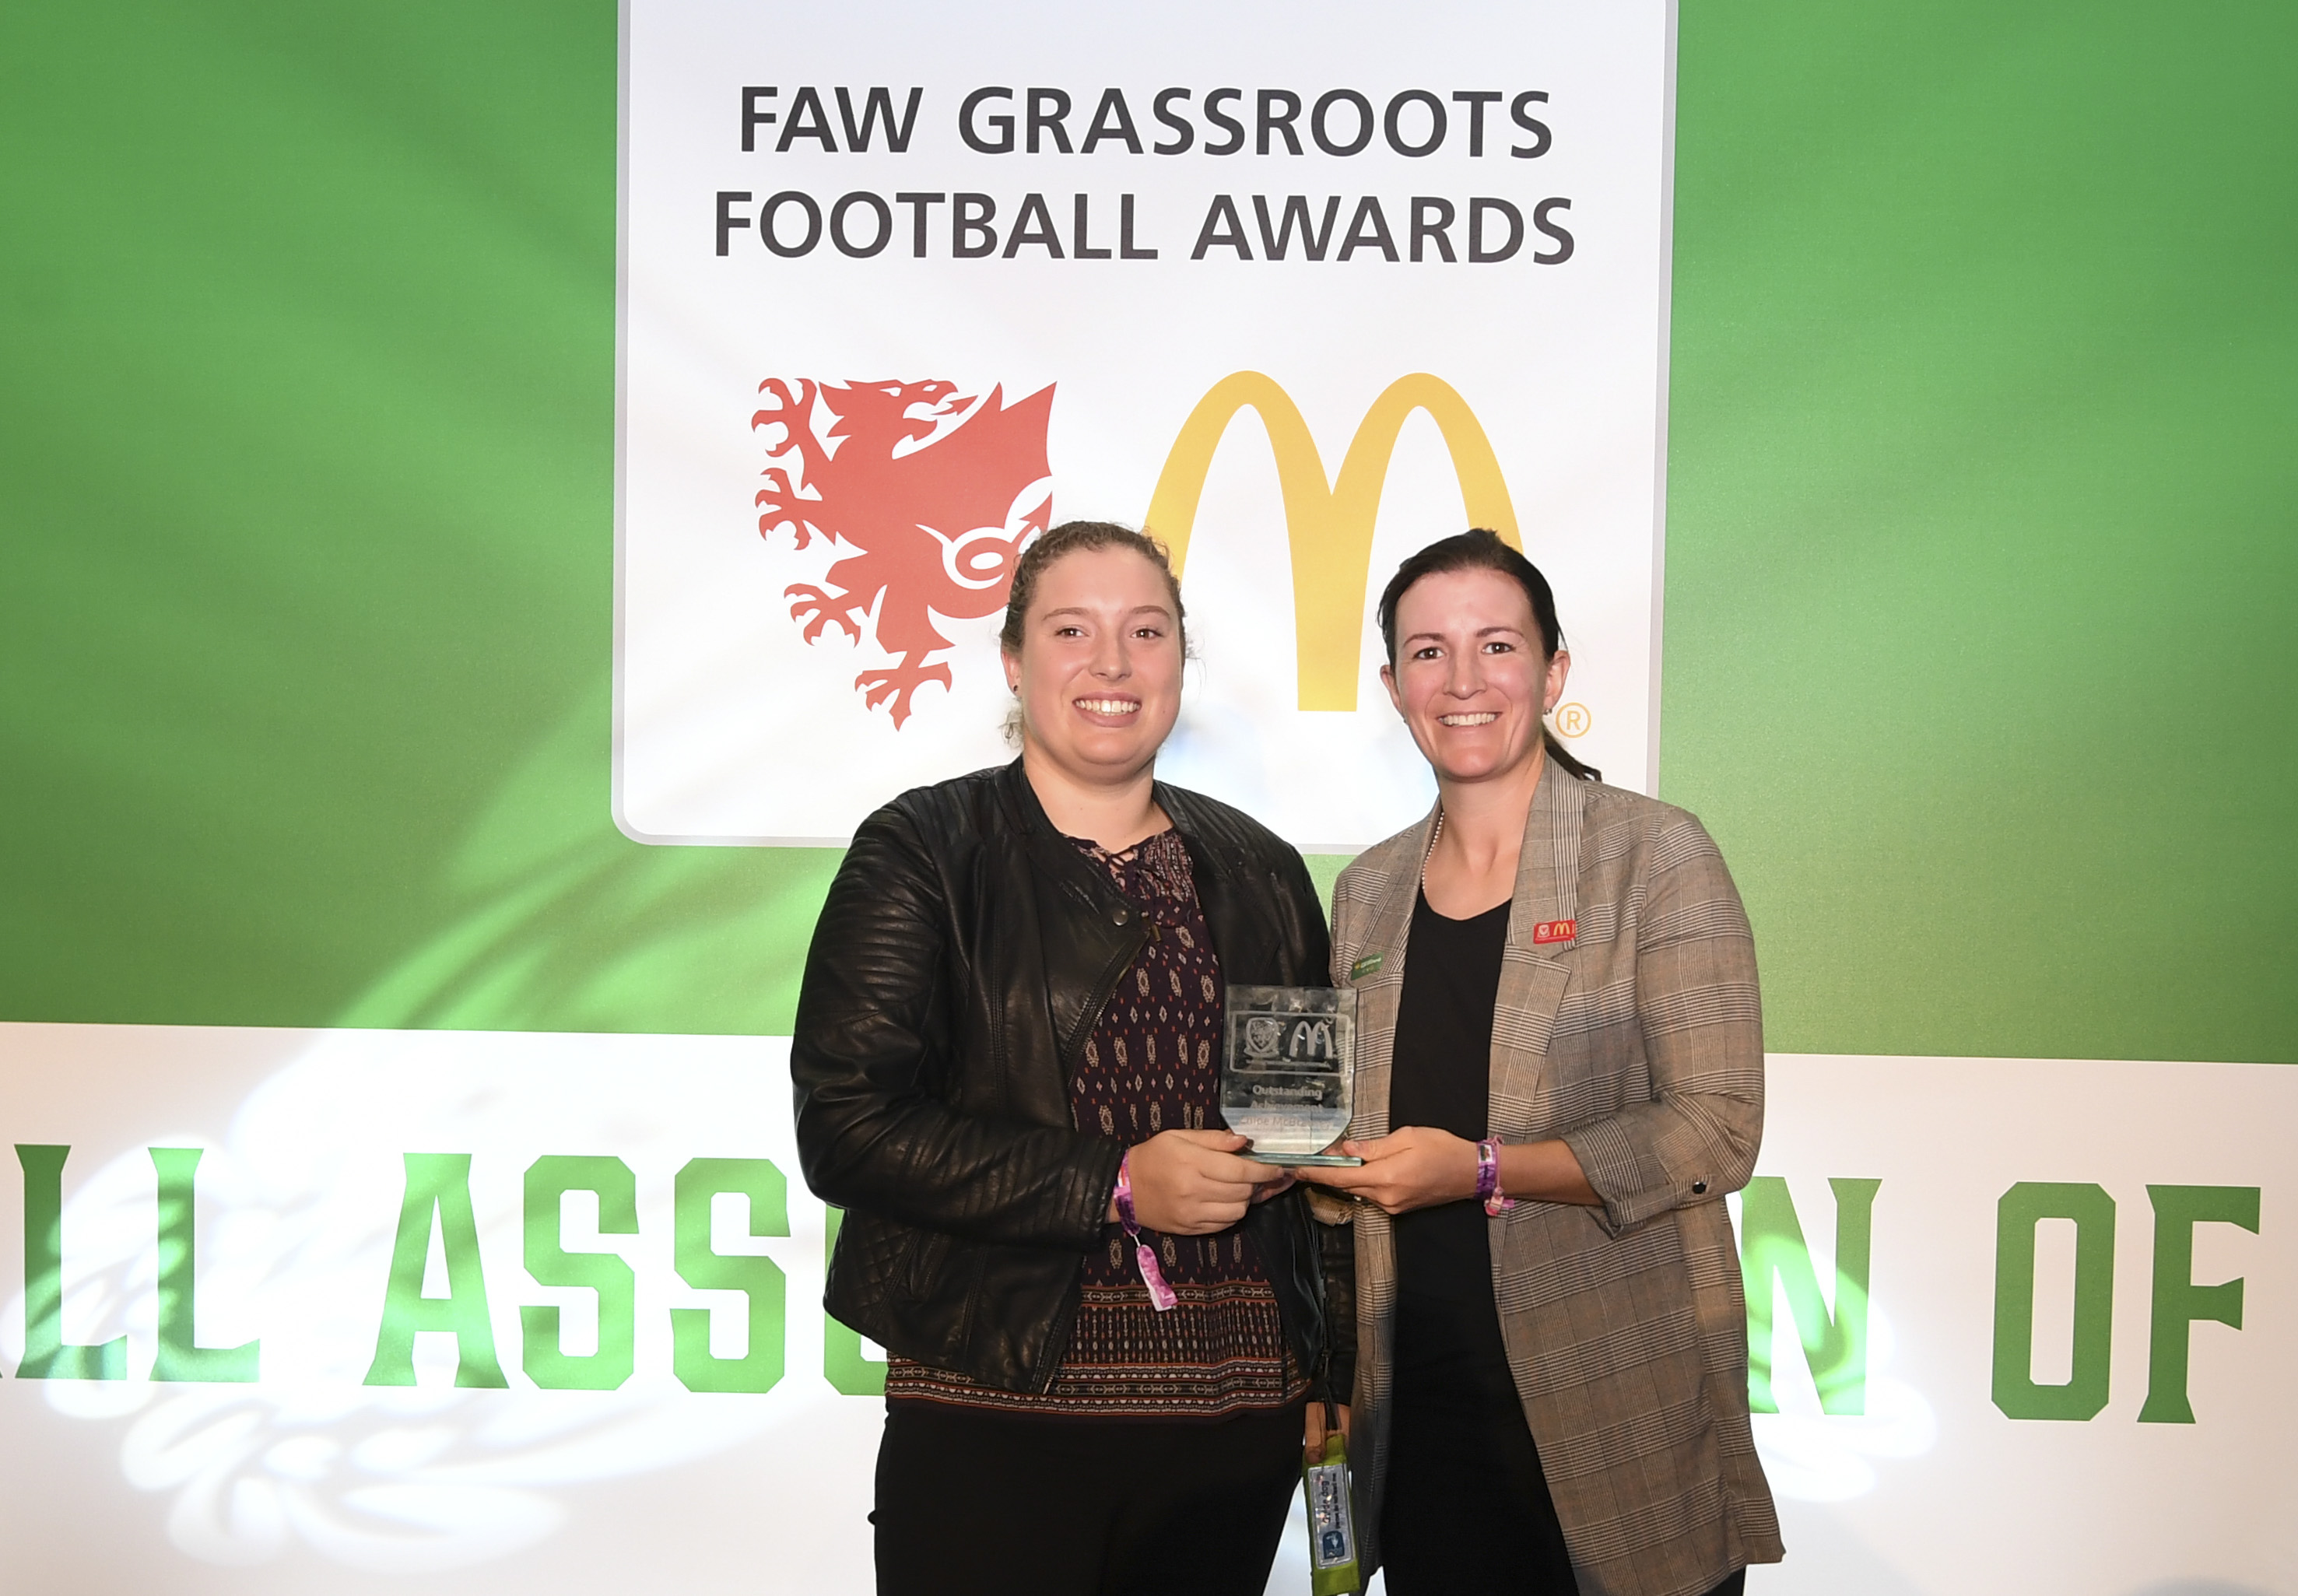 VOTE FOR WALES' BEST GRASSROOTS FOOTBALL STORY